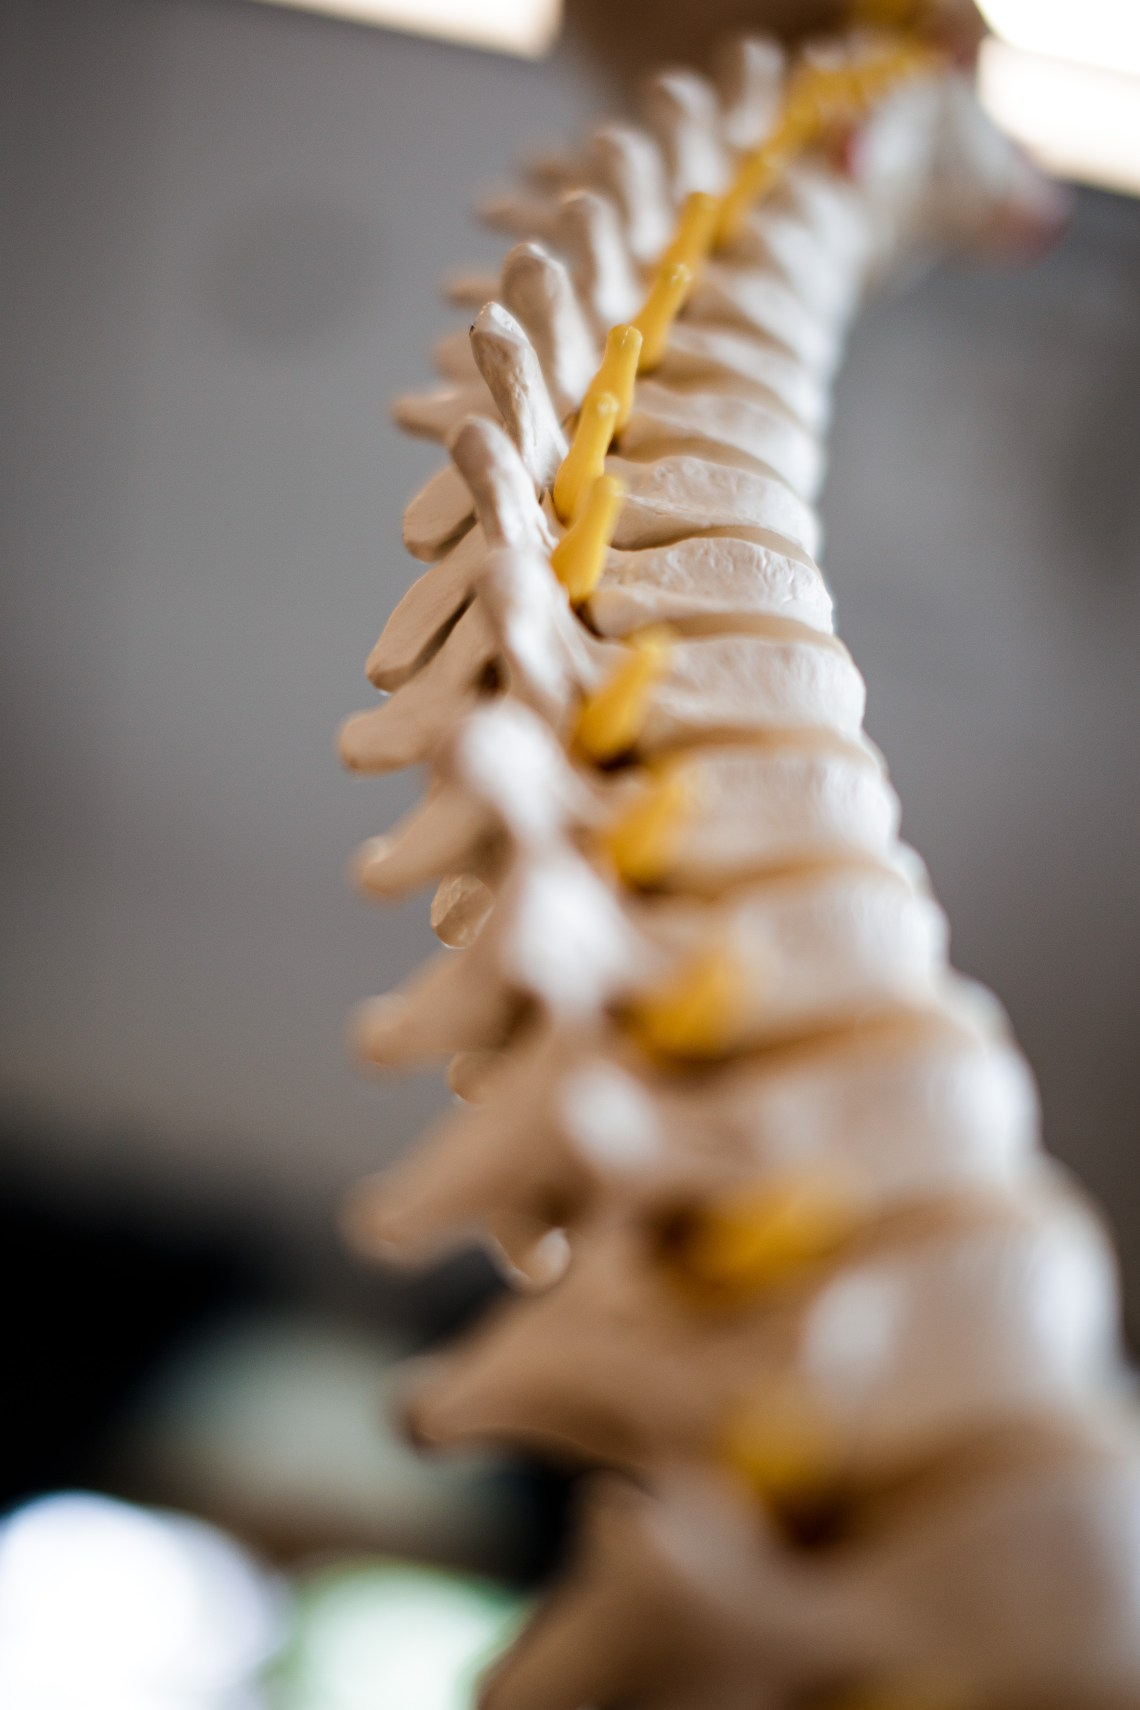 SPINAL CORD, DURANGO CO CHIROPRACTIC, APPOINTMENT IN DURANGO CO, SOUTHWEST COLORADO DOCTOR, PAGOSA SPRINGS, CORTEZ, BACK PAIN, SPINAL ADJUSTMENT, PAIN RELIEF, ILLNESS, HEALTH, MOUNTAIN LIVING, BEST IN DURANGO, COLORADO DOCTOR, COLORADO CHIROPRACTOR